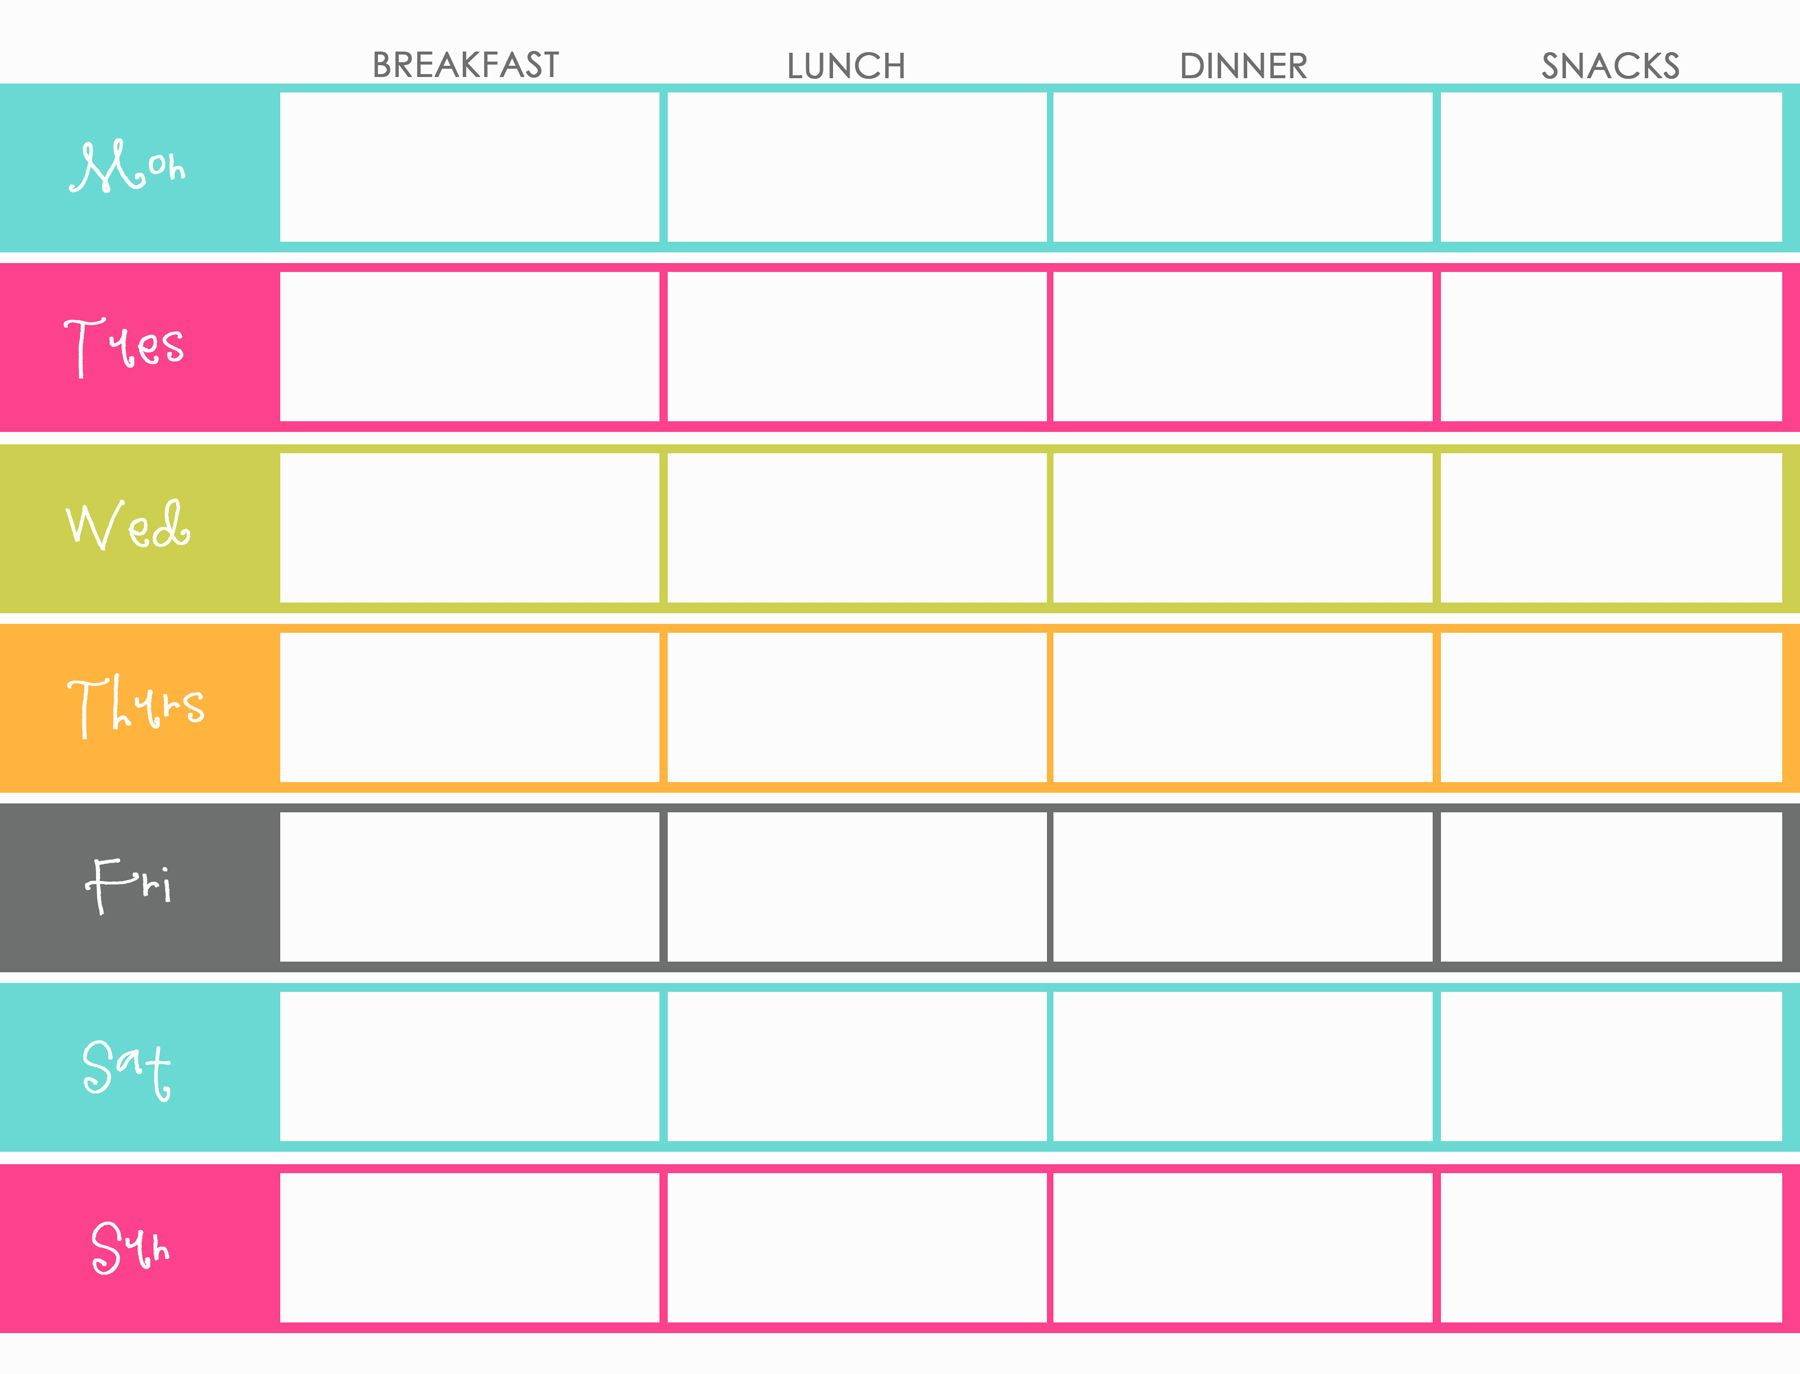 Free Menu To Be Printed  Lunch Snacks Menu And Lunches